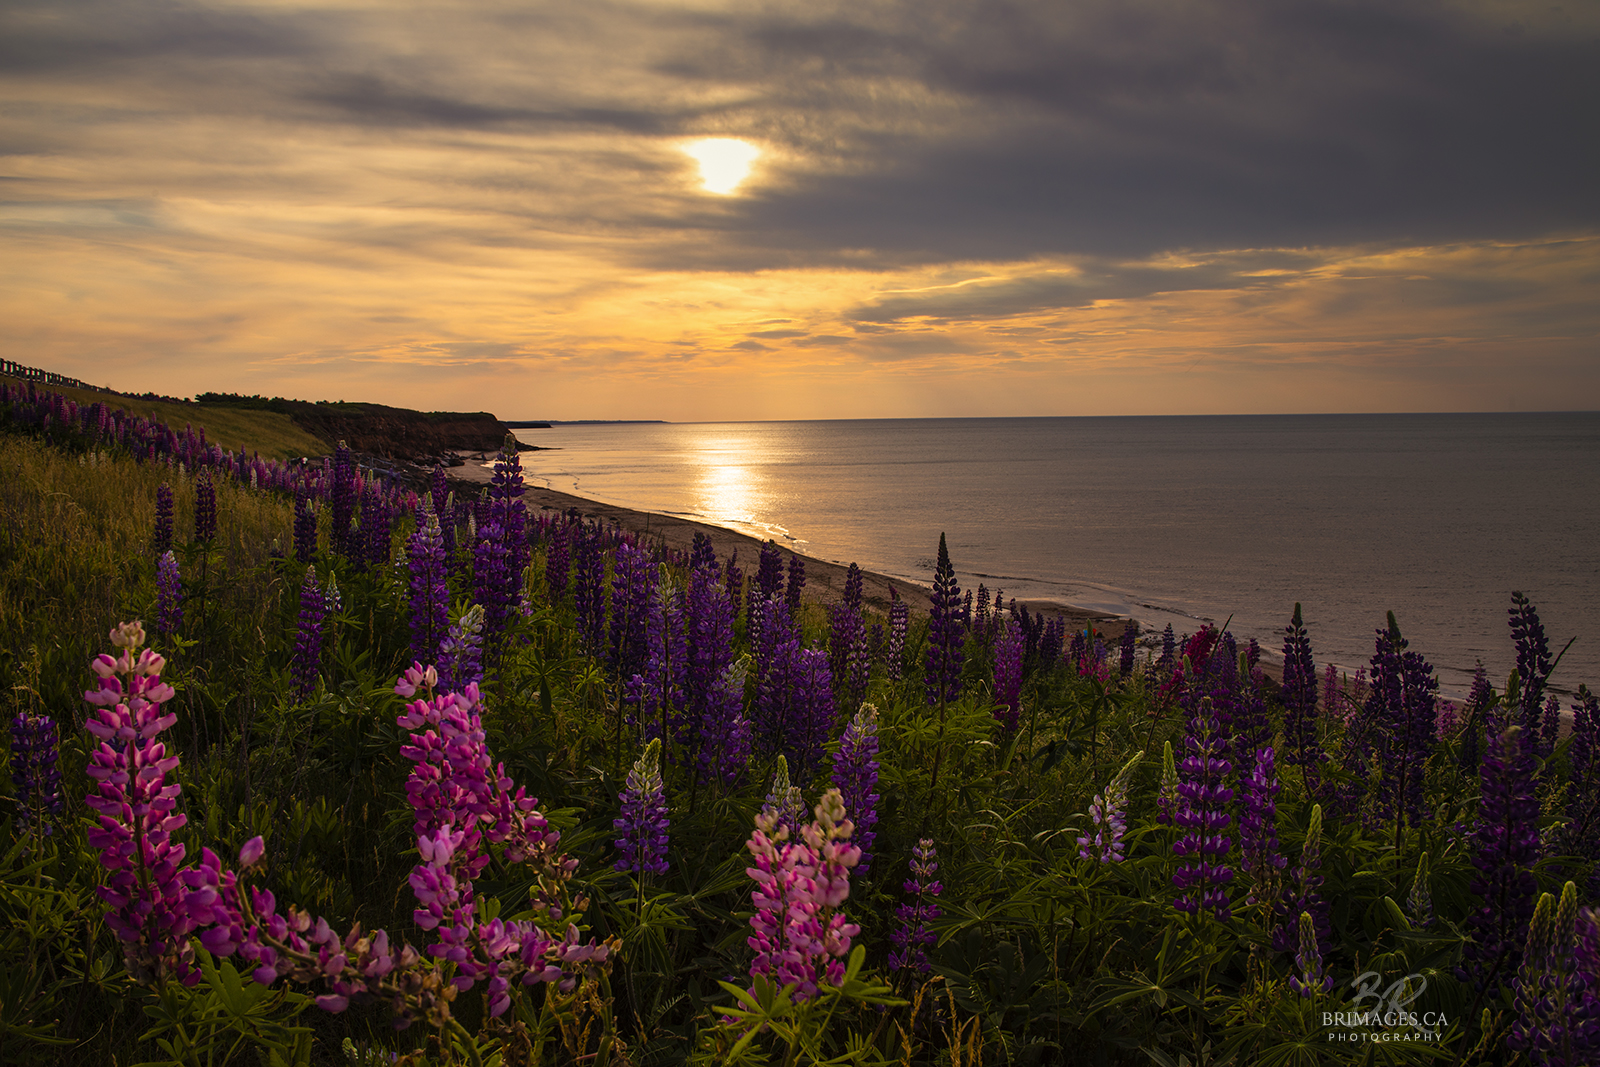 Sunset_PEI_lupins_BRimages.ca